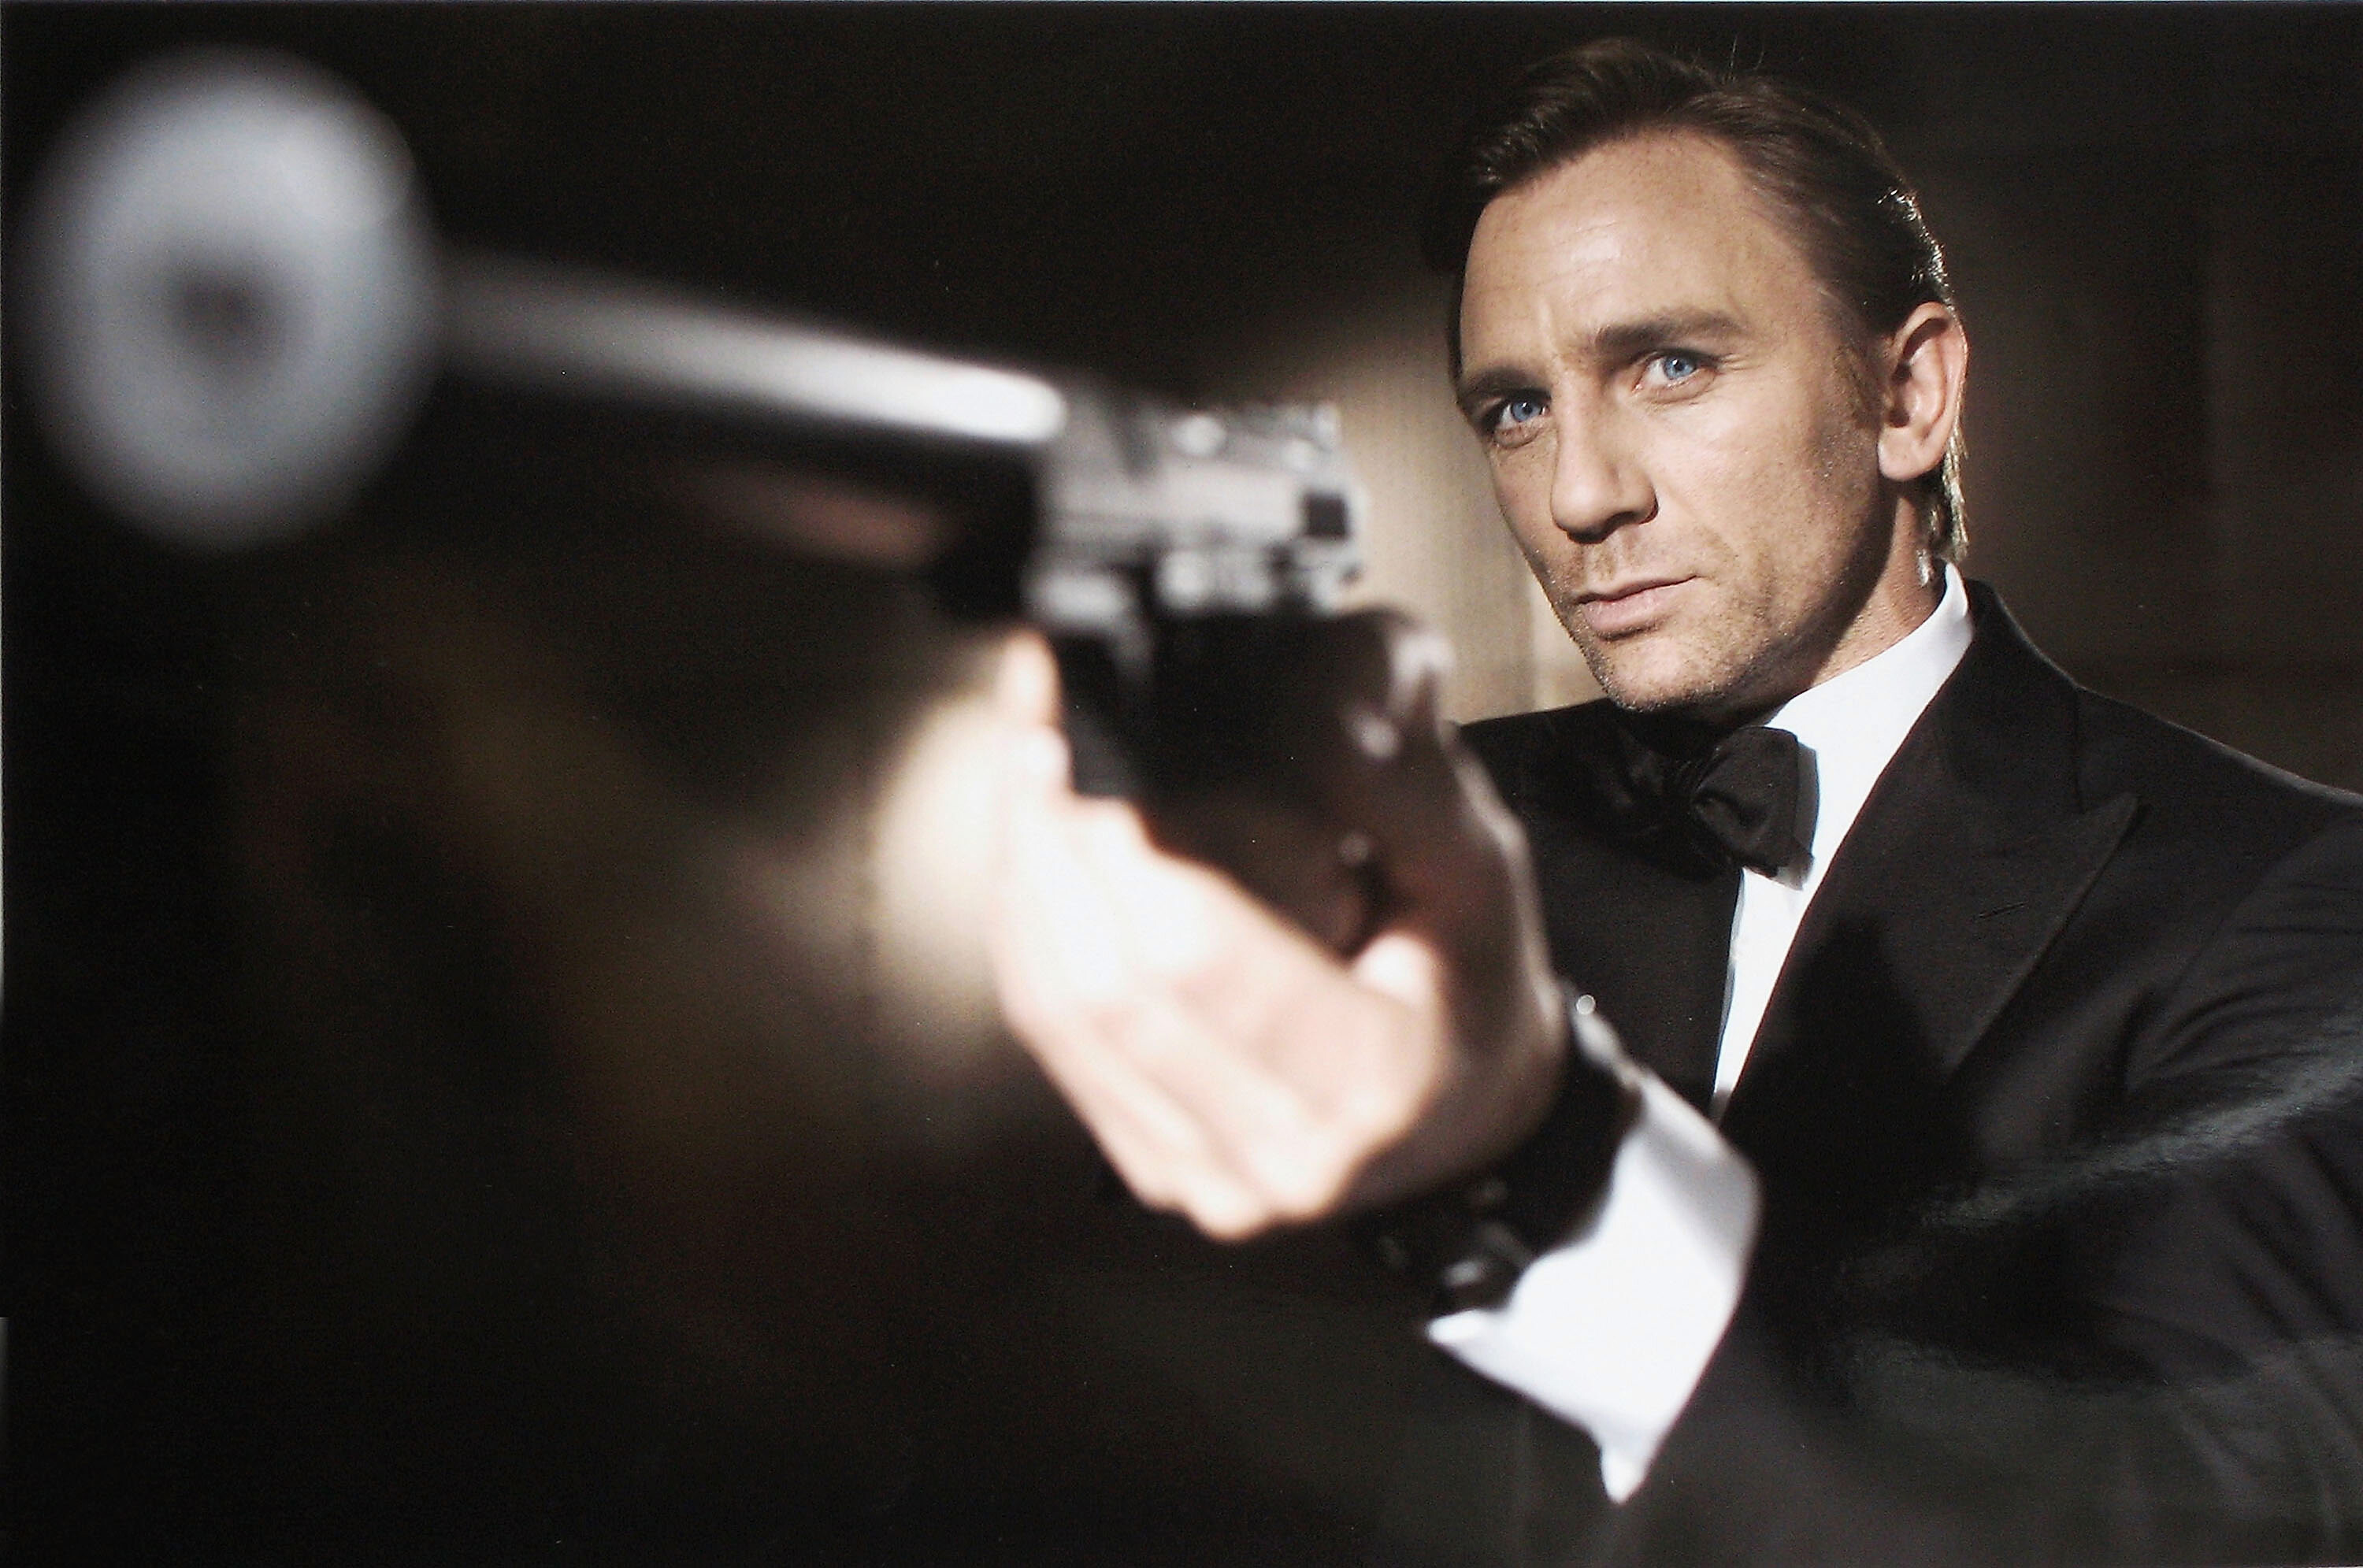 Daniel Craig reportedly made more than $100 million thanks to streaming